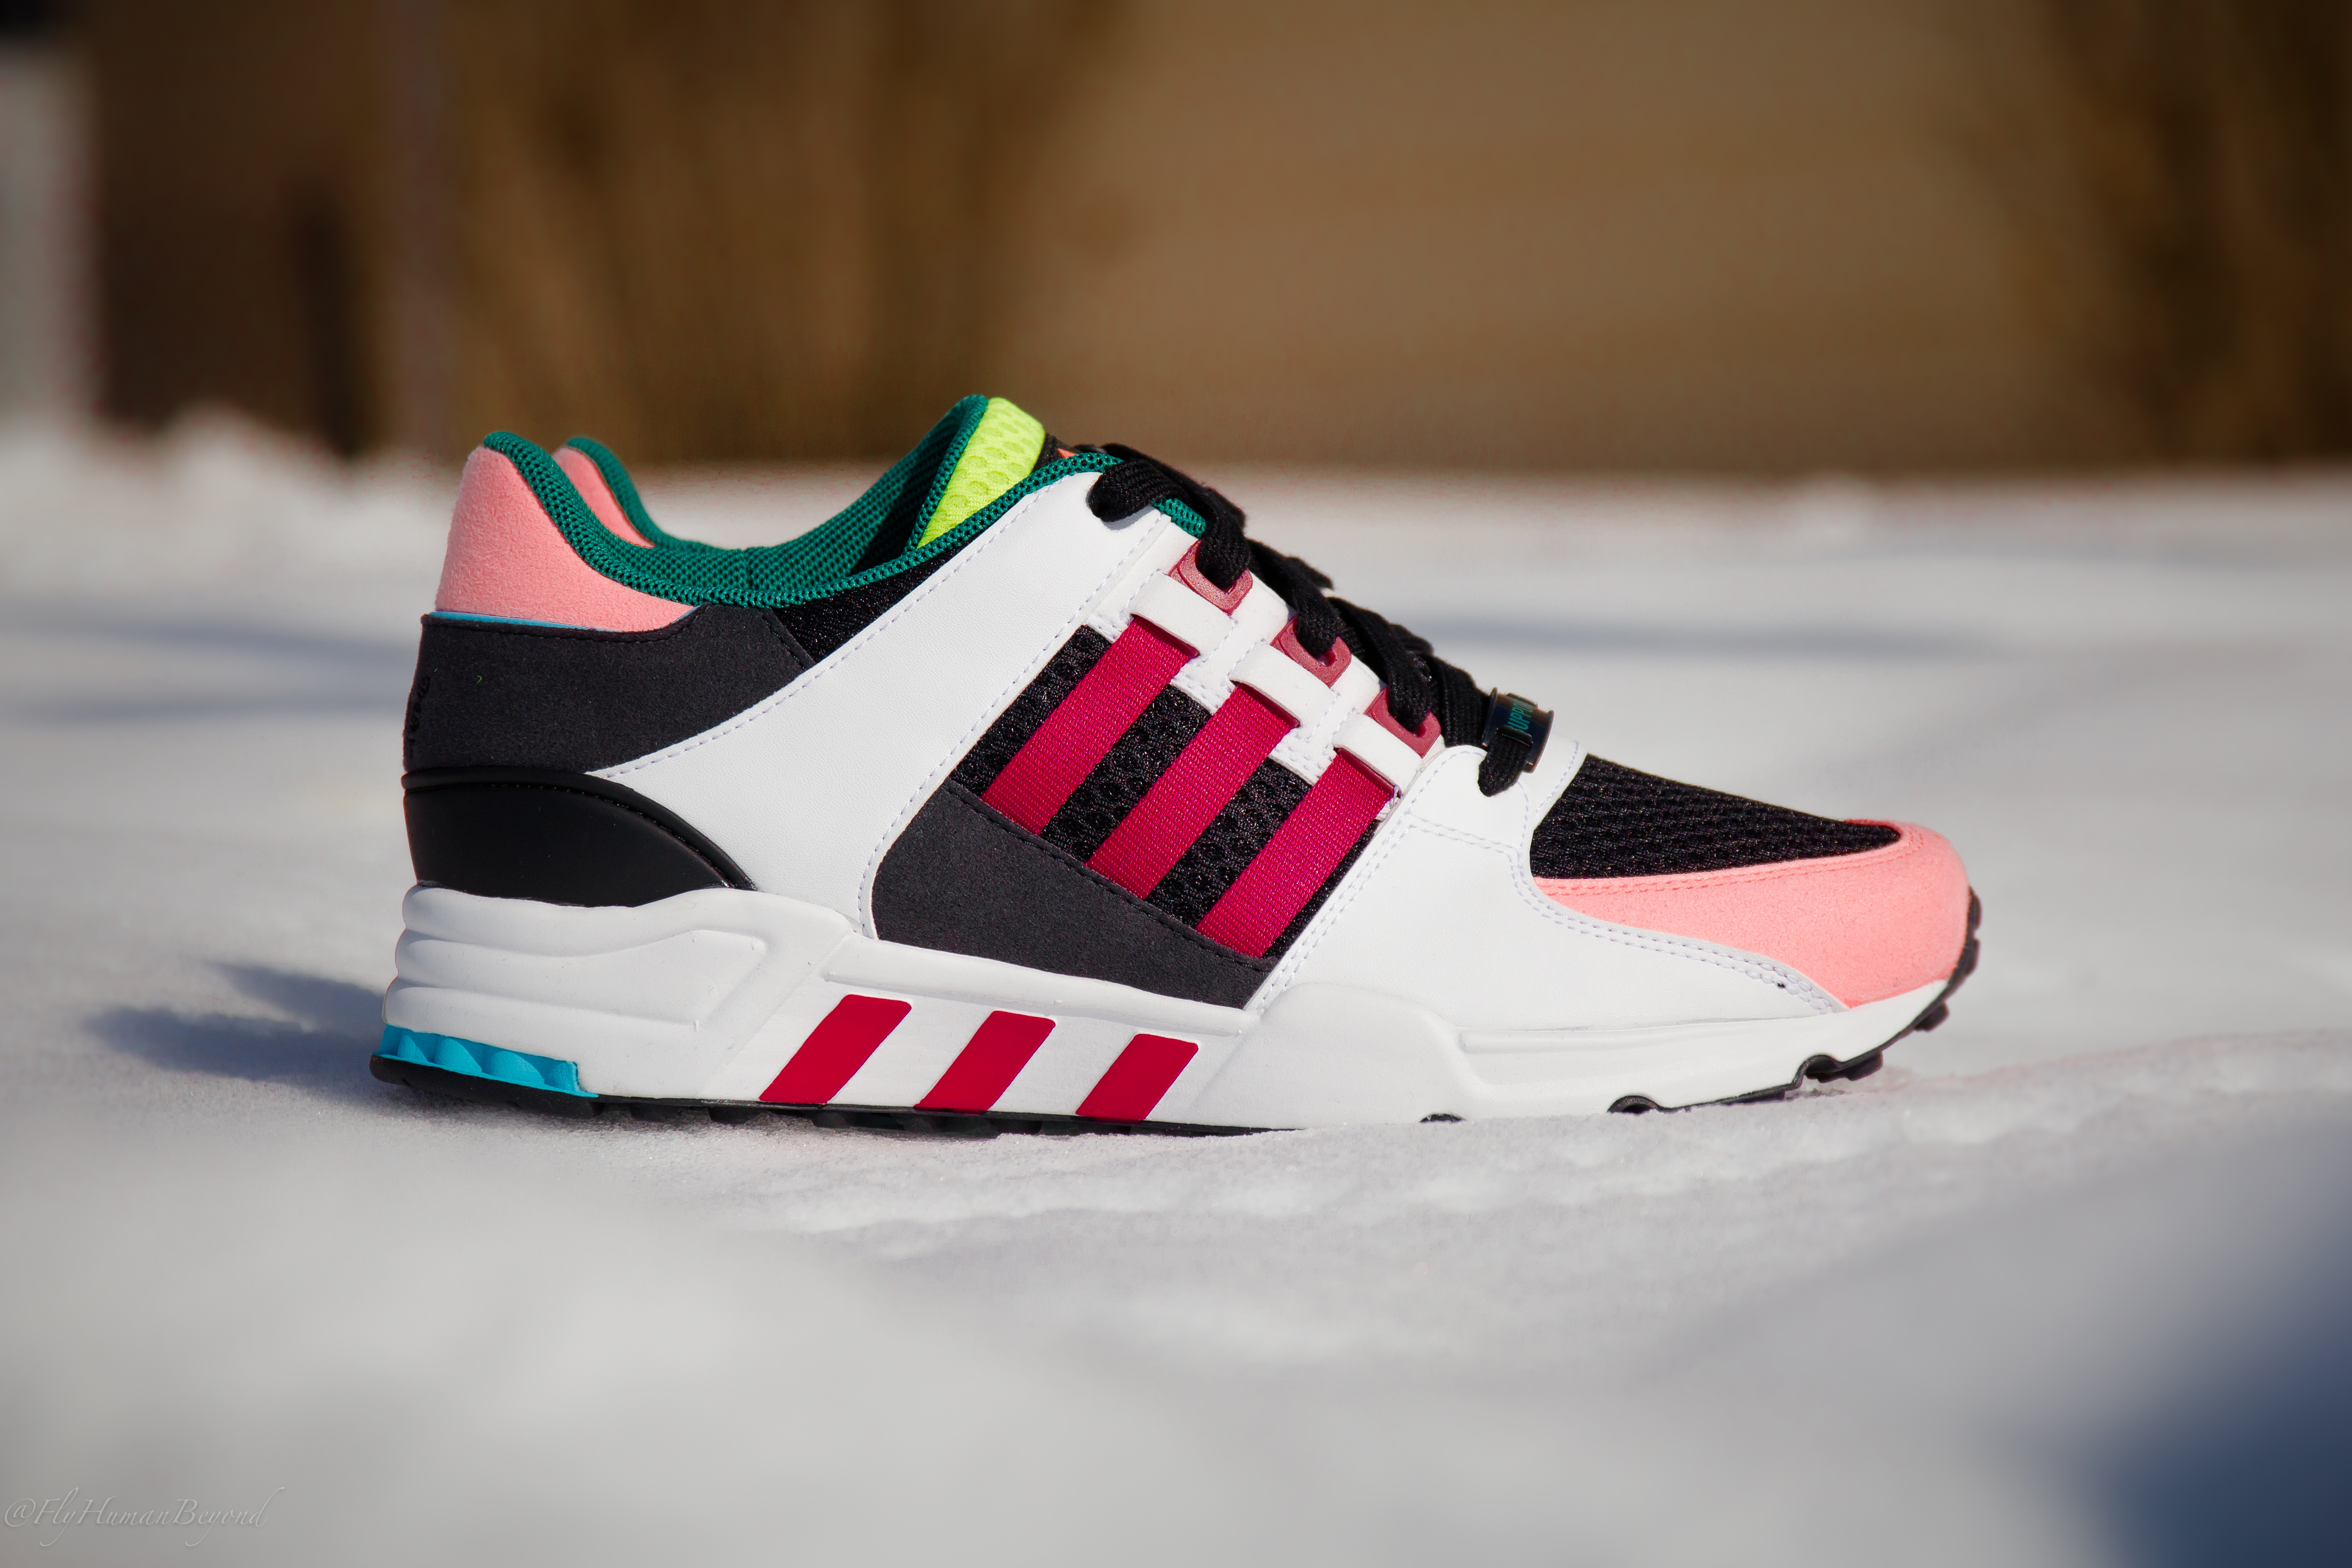 ADIDAS EQT Running Support News, Colorways, Releases